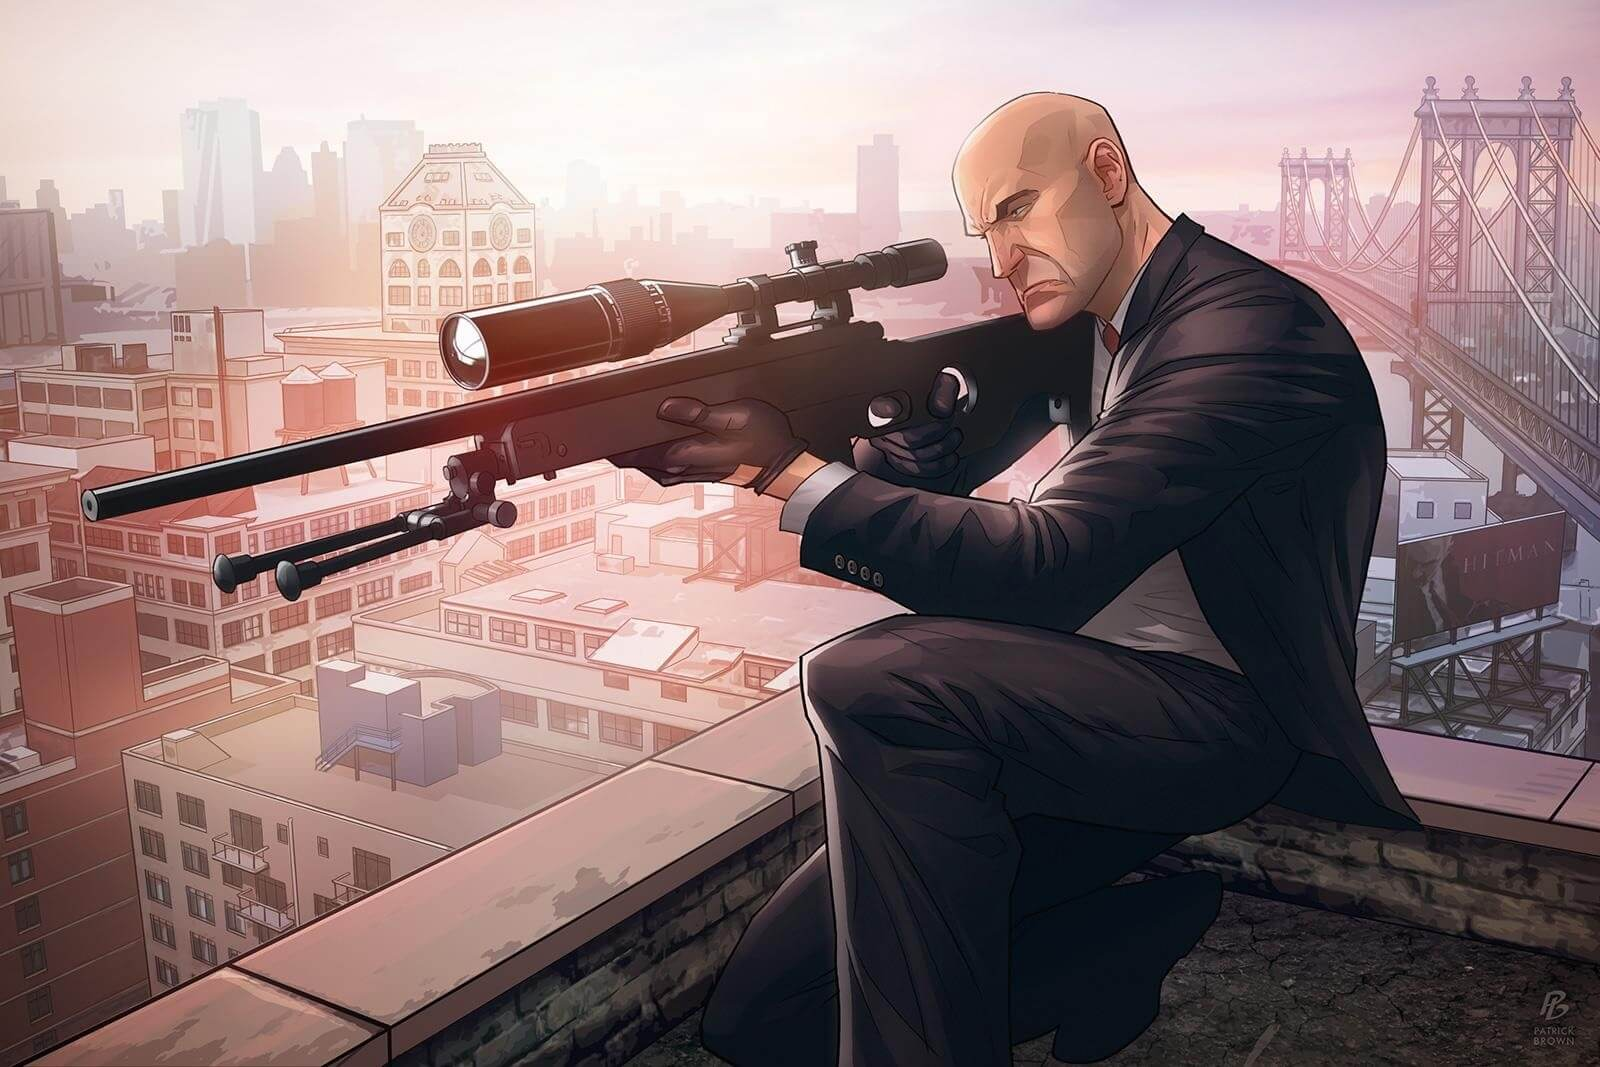 Hitman Character in Stealth Games